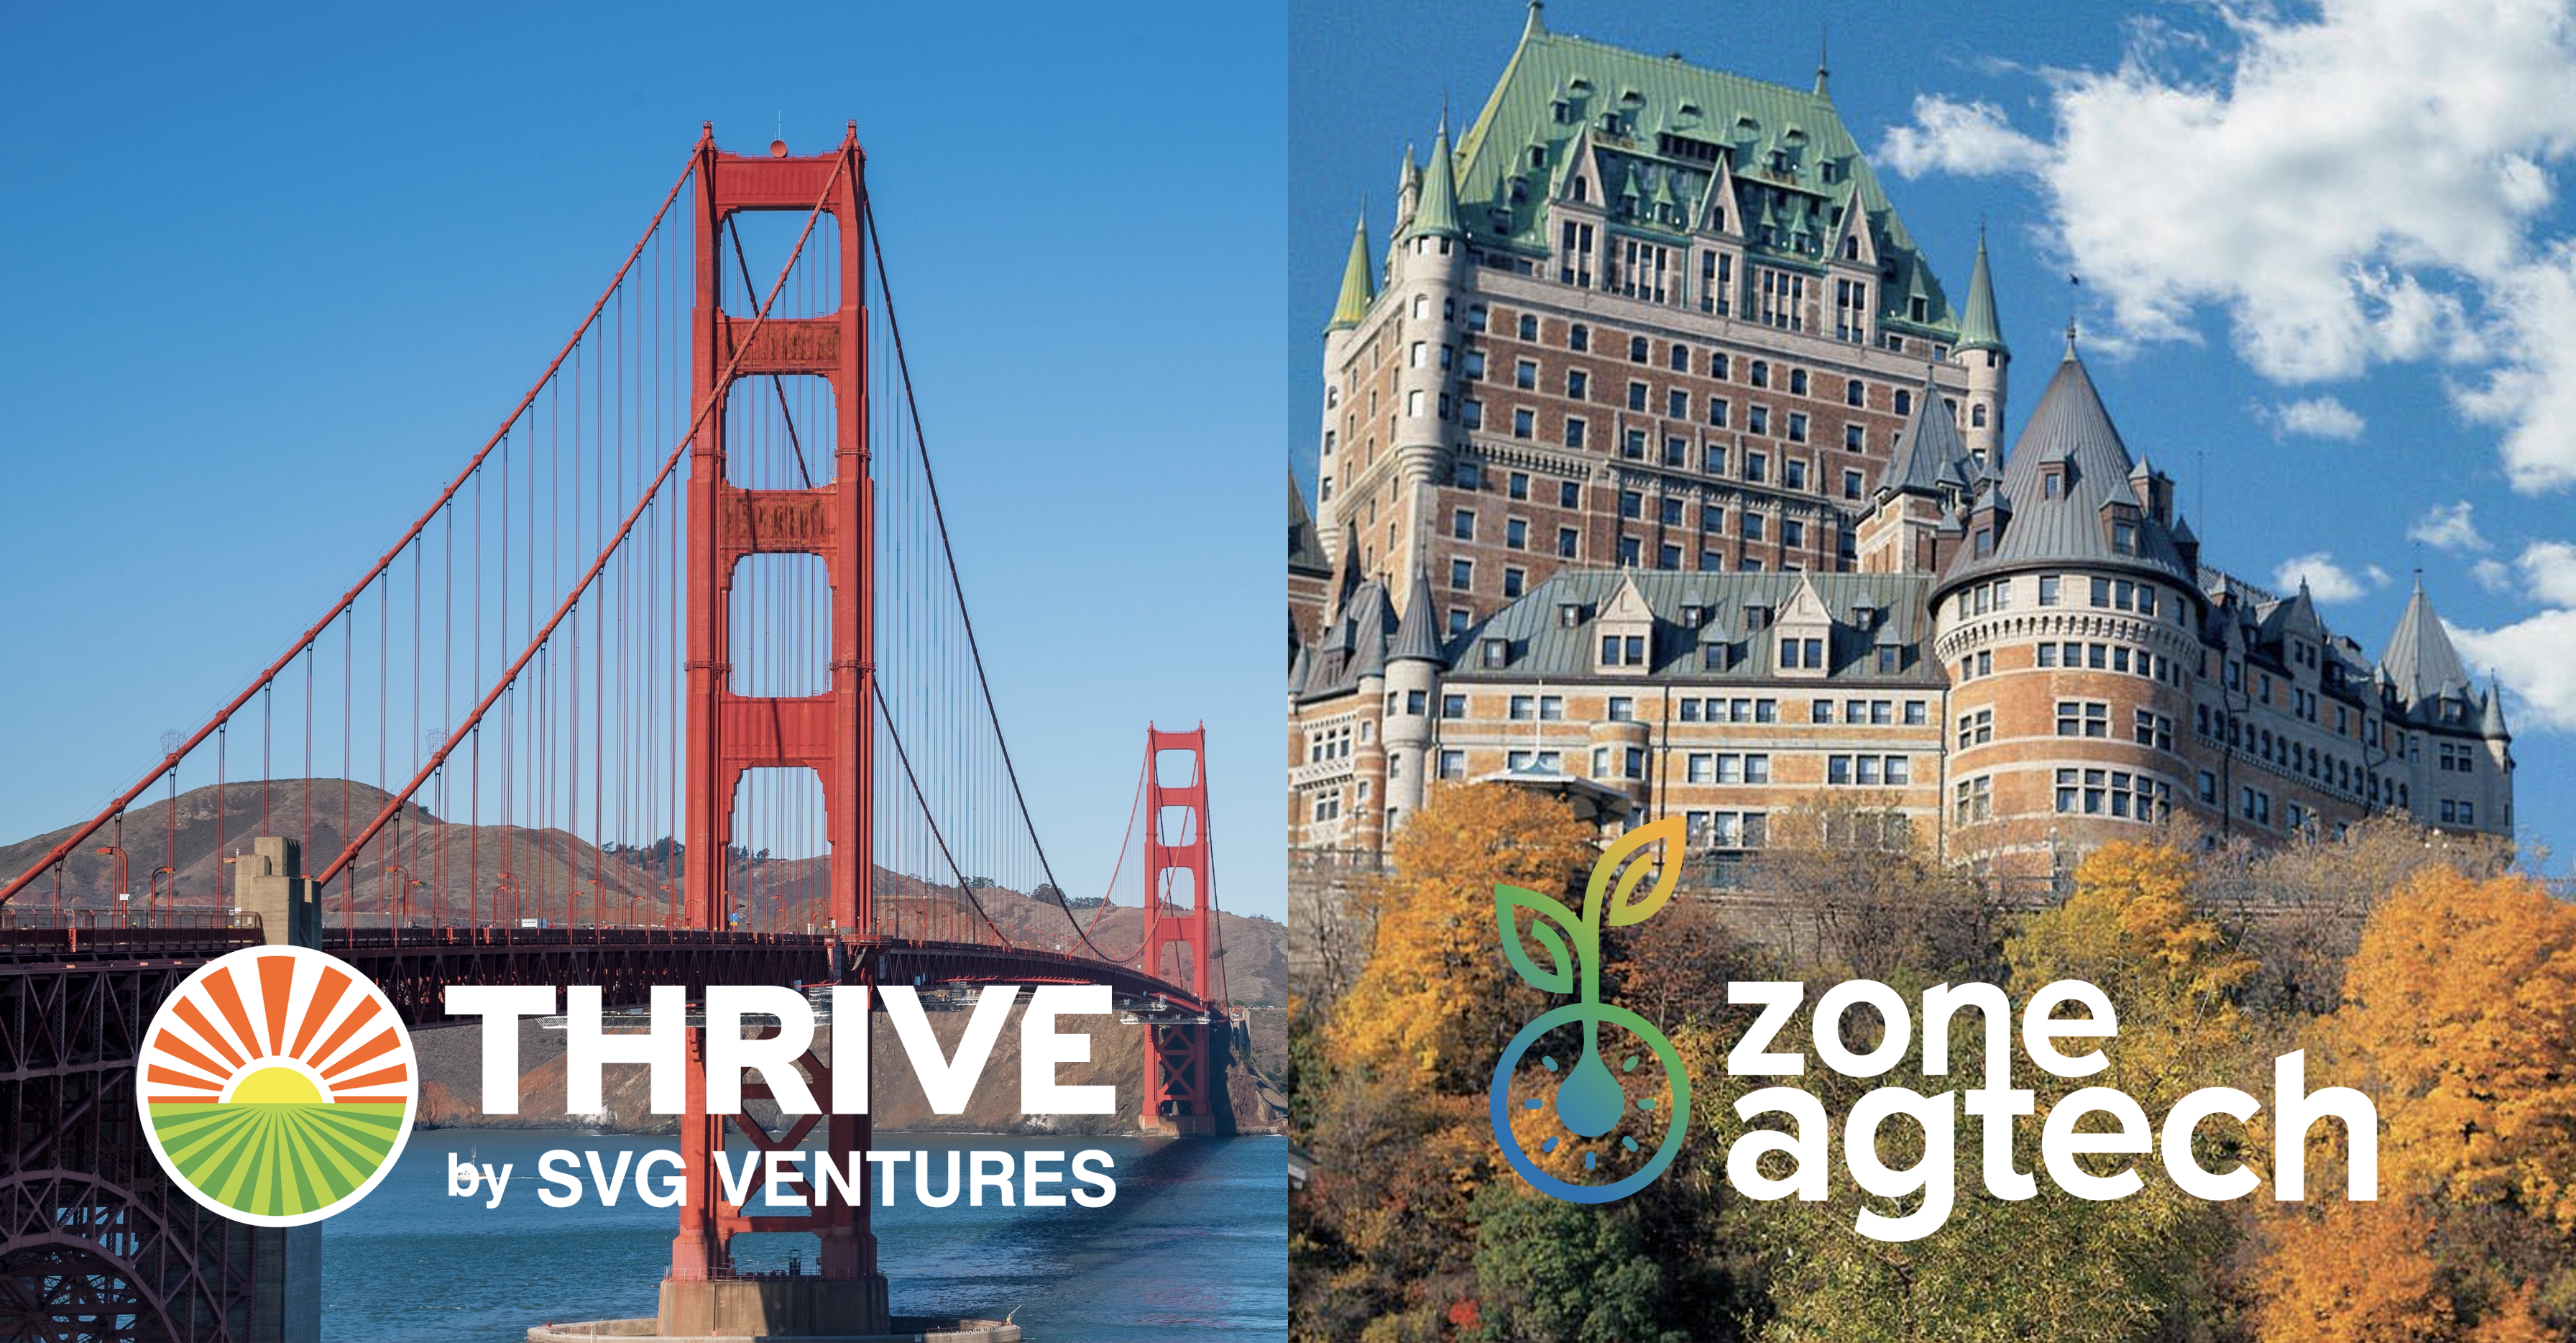 SVG Ventures | THRIVE and Zone Agtech partner to catalyze agtech innovation in Quebec